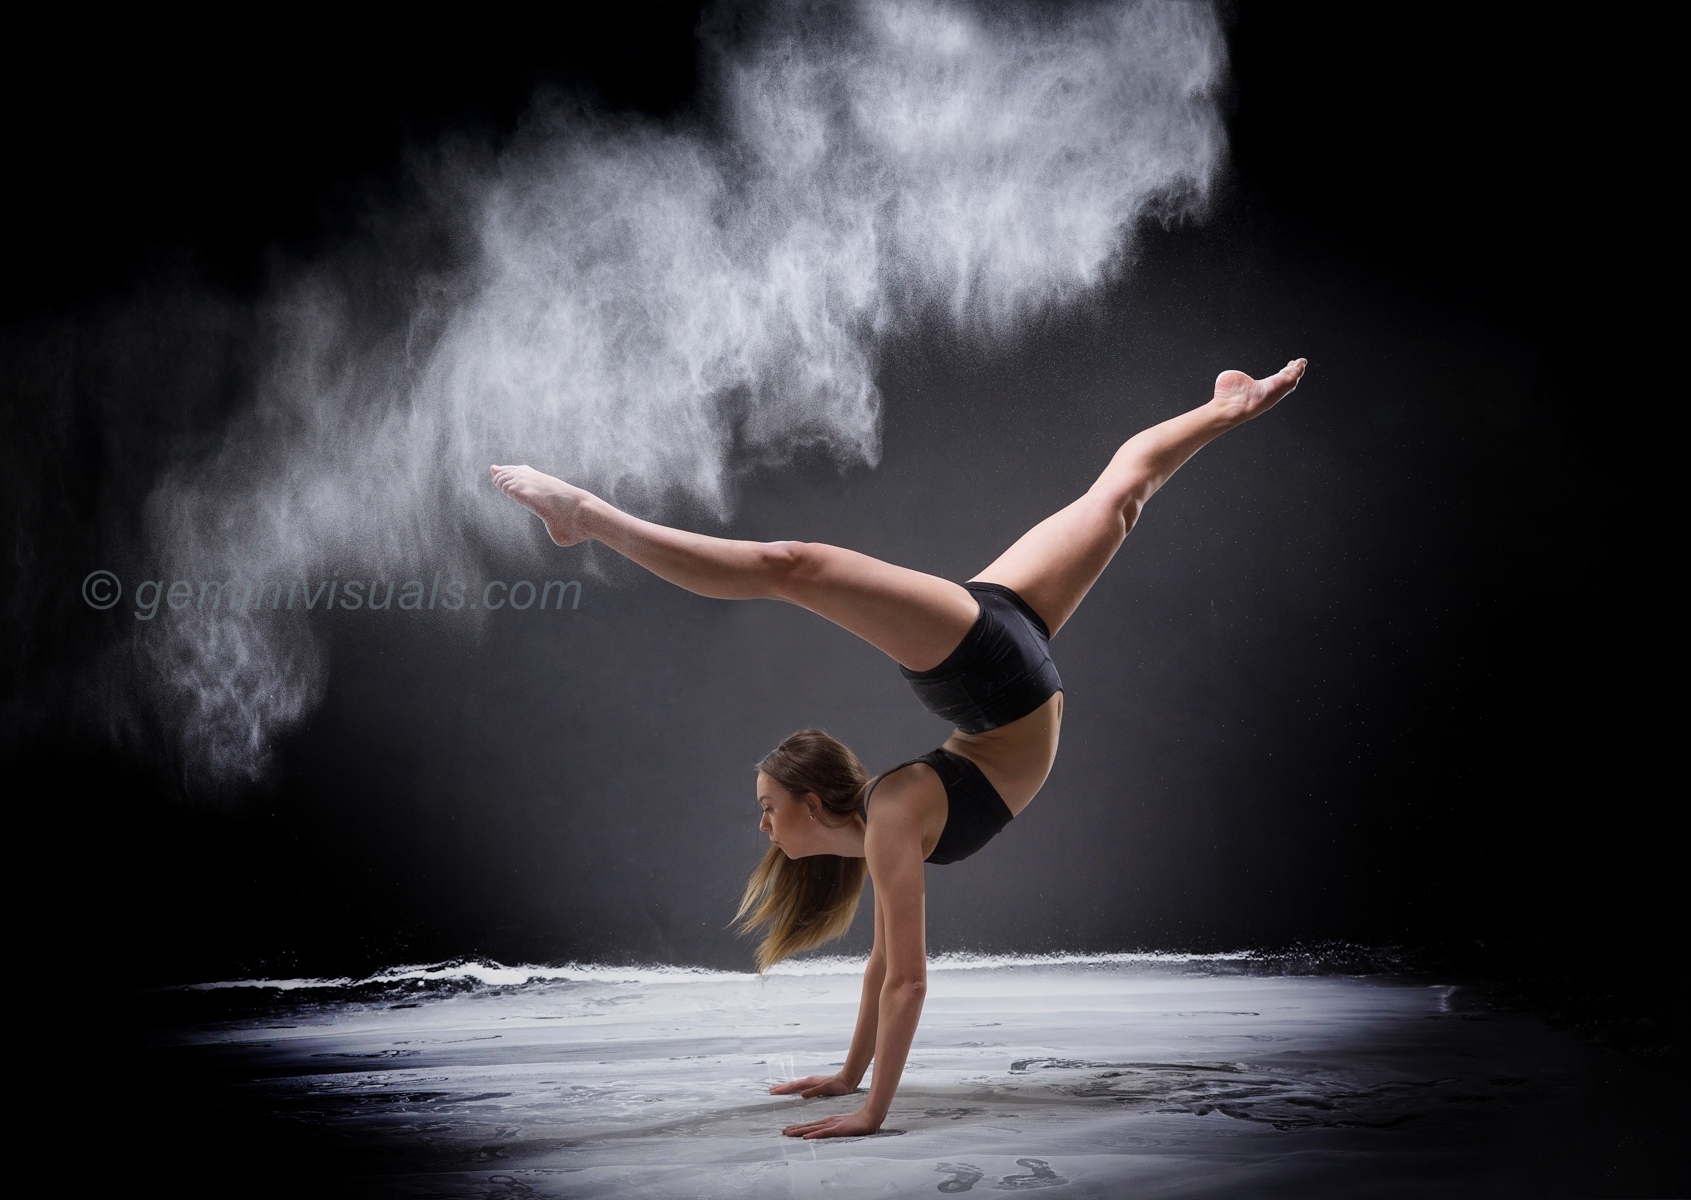 creative dance photos, creative dance photography, dancers photos, dance portfolio, vancouver dance portfolio